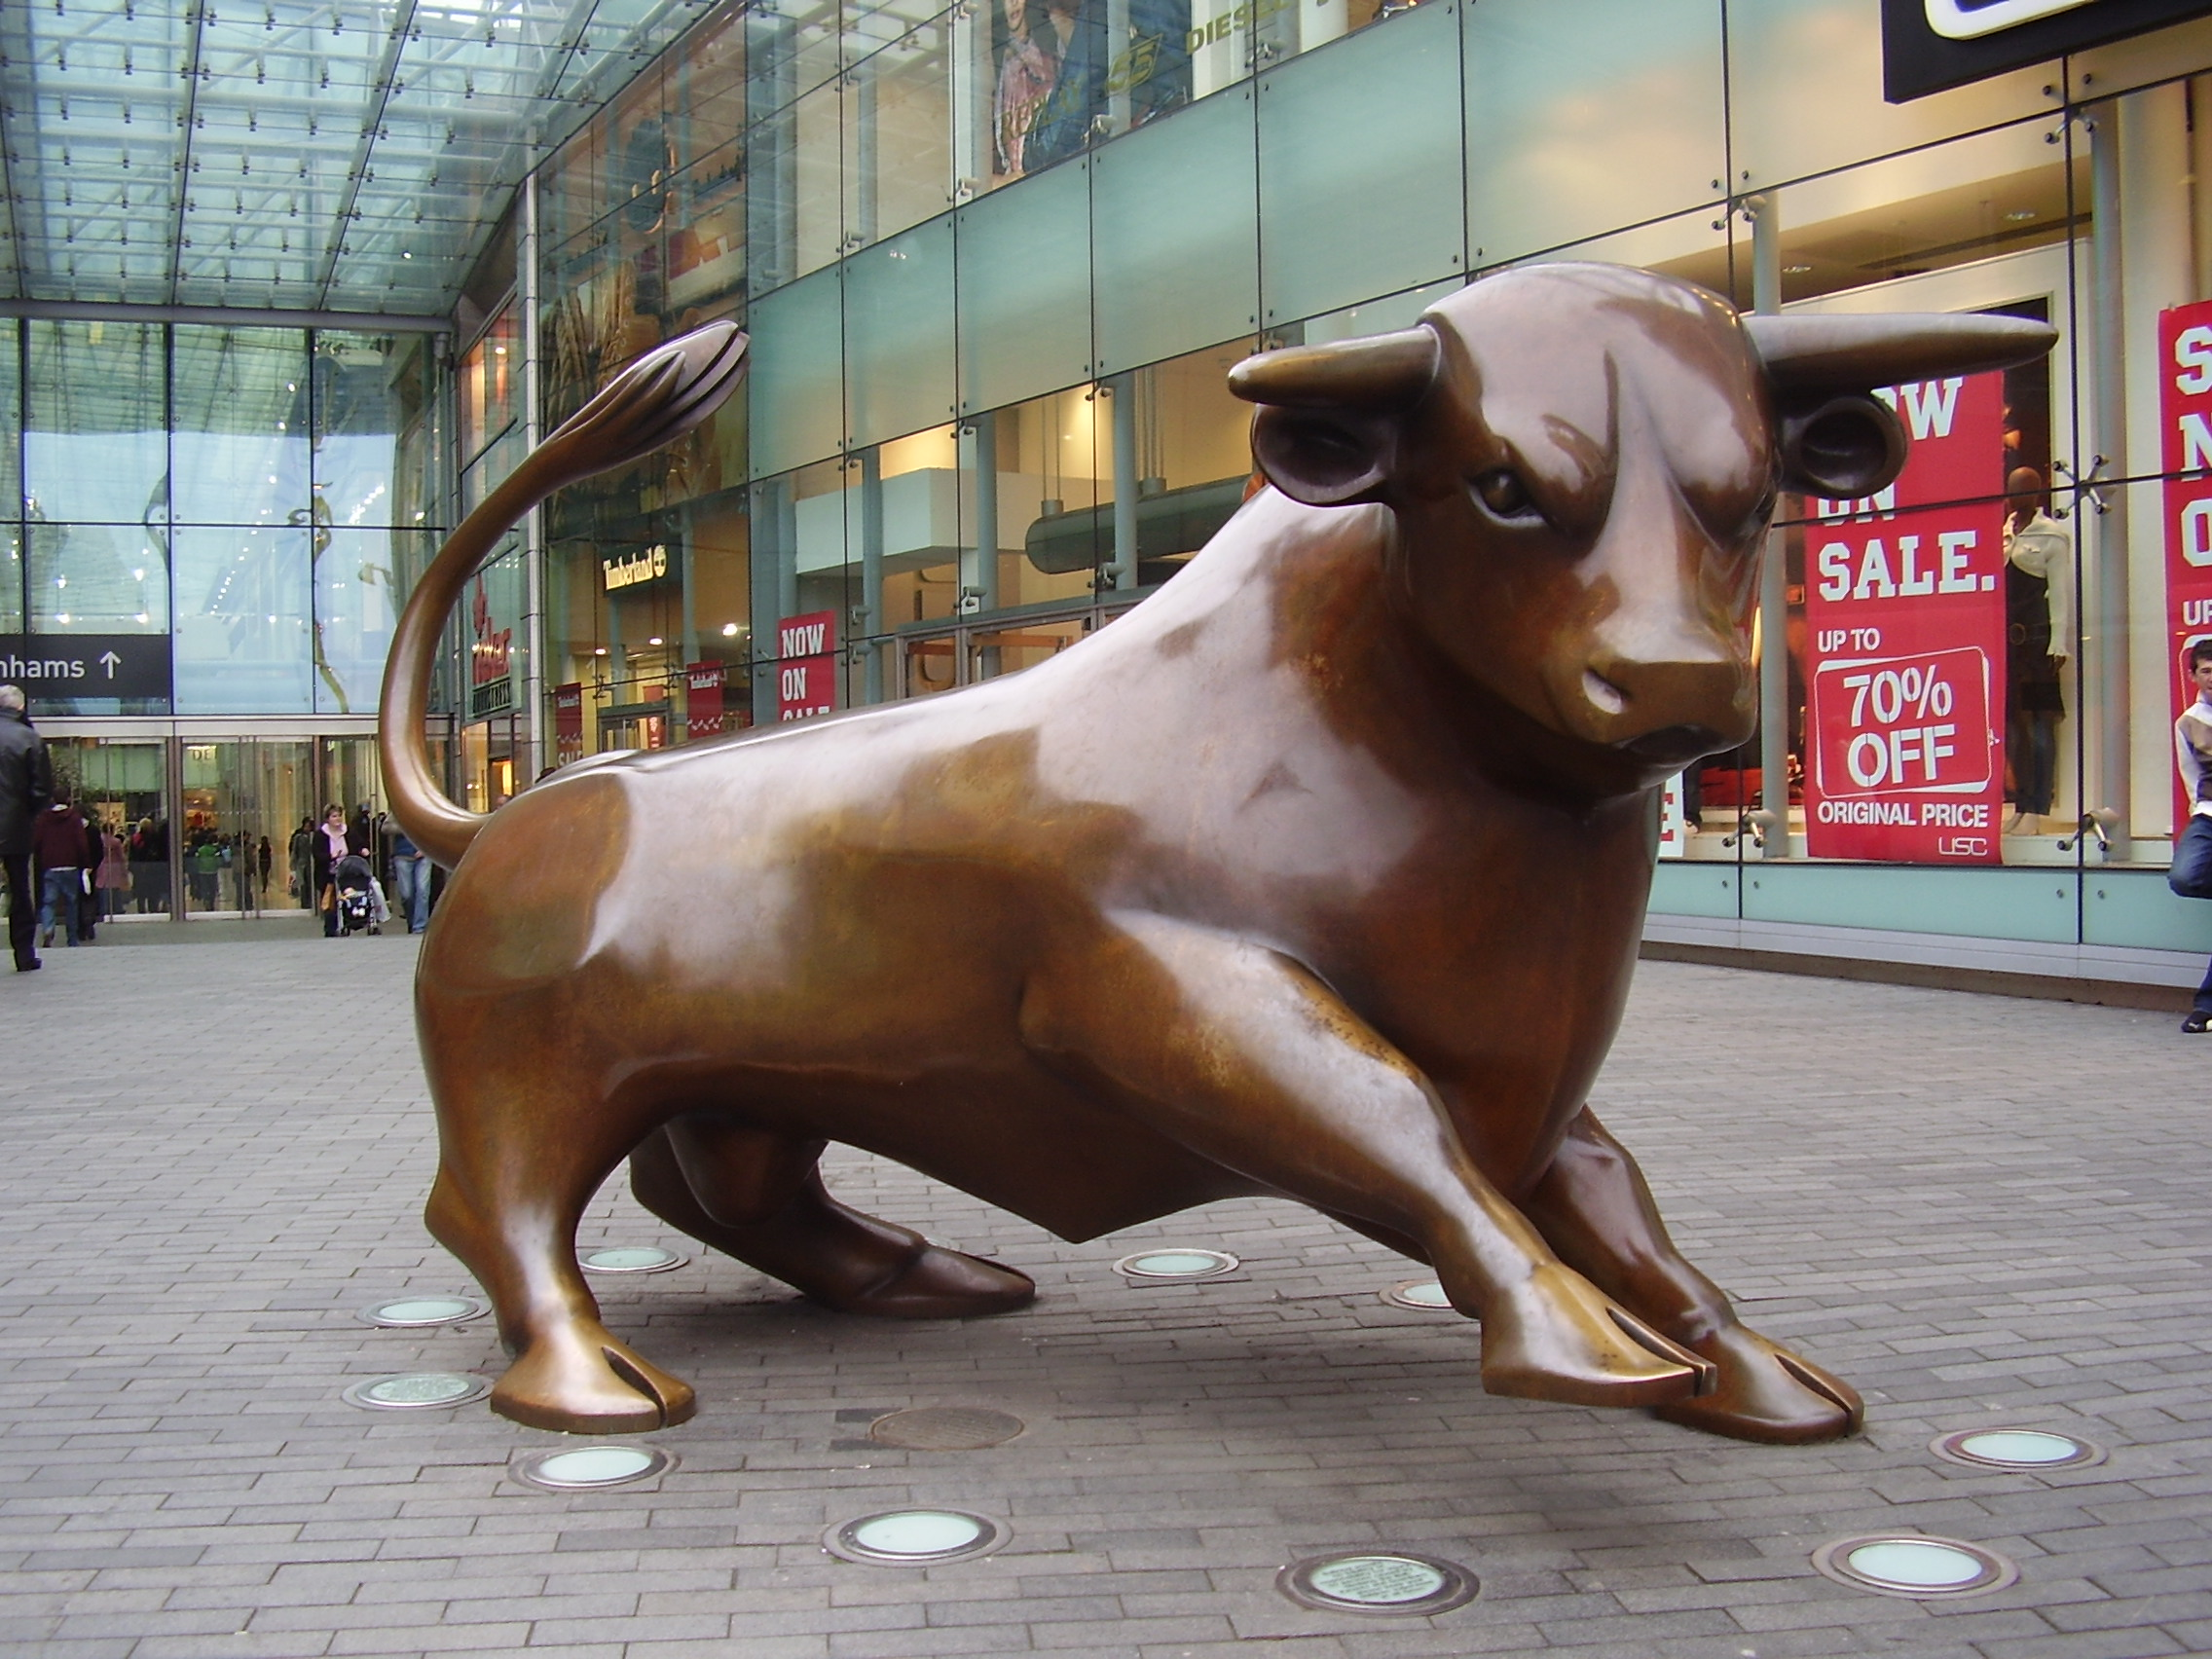 https://upload.wikimedia.org/wikipedia/commons/1/1b/Bullring_Bull.jpg